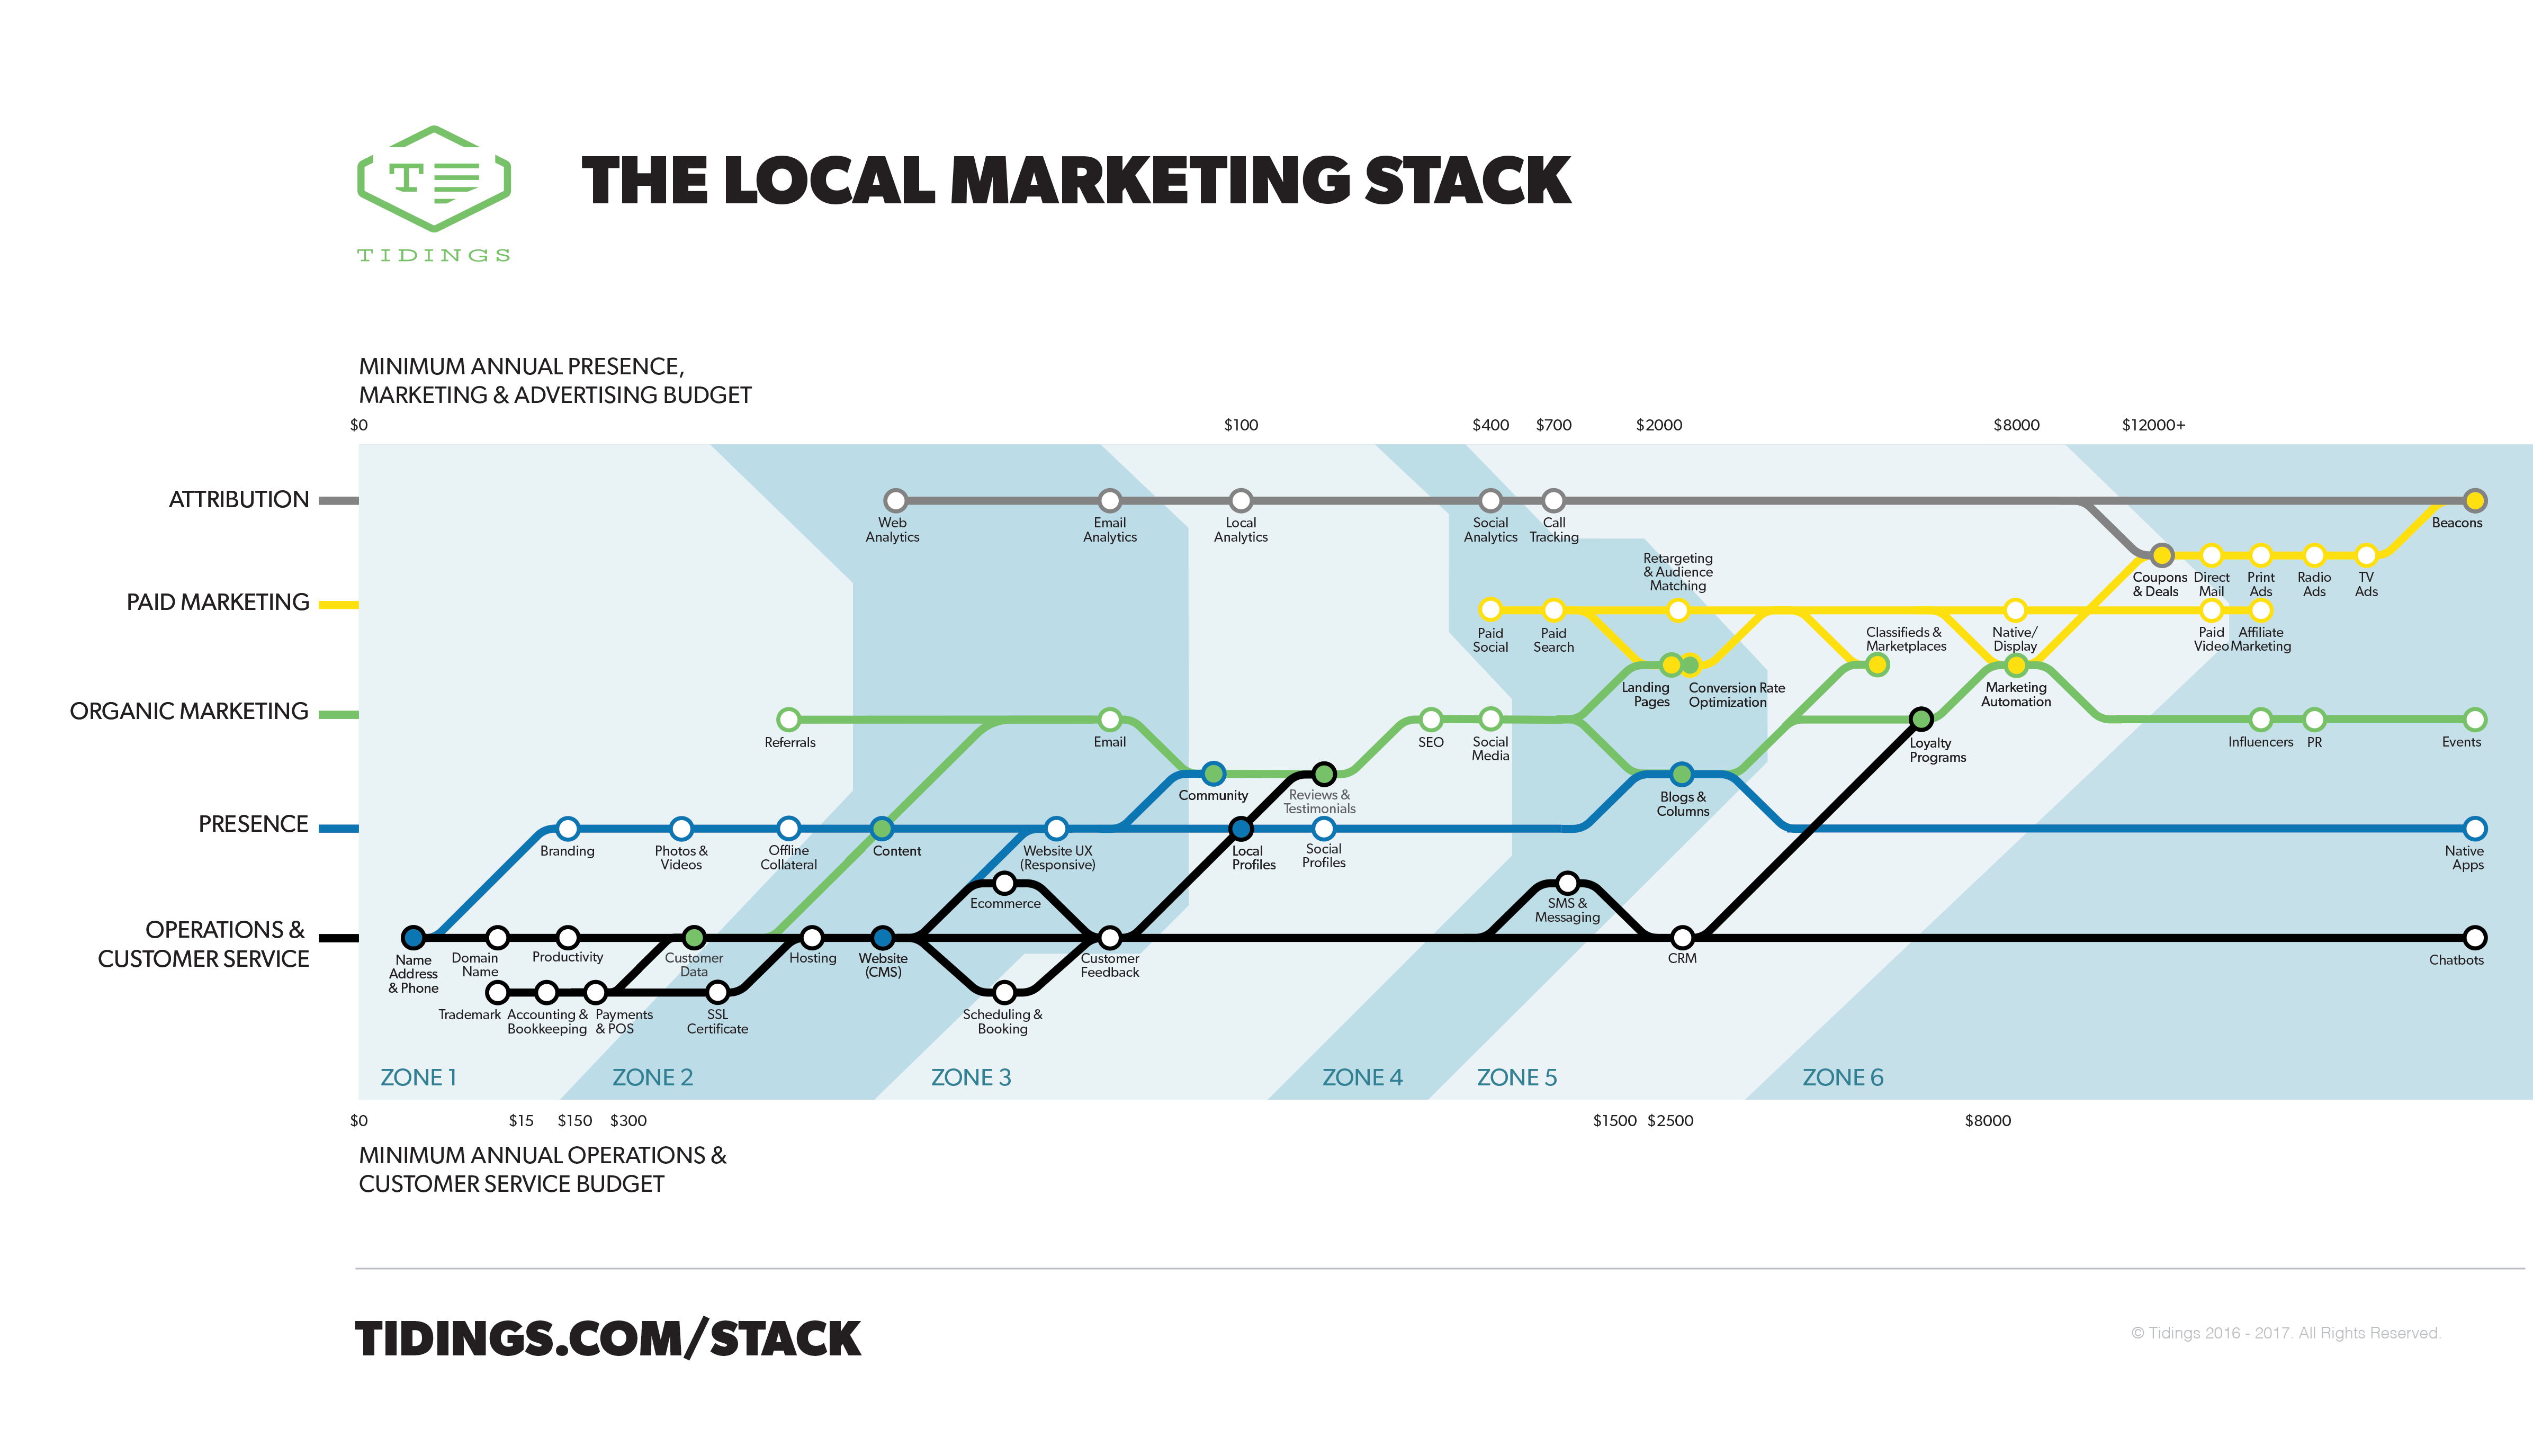 The Local Marketing Stack